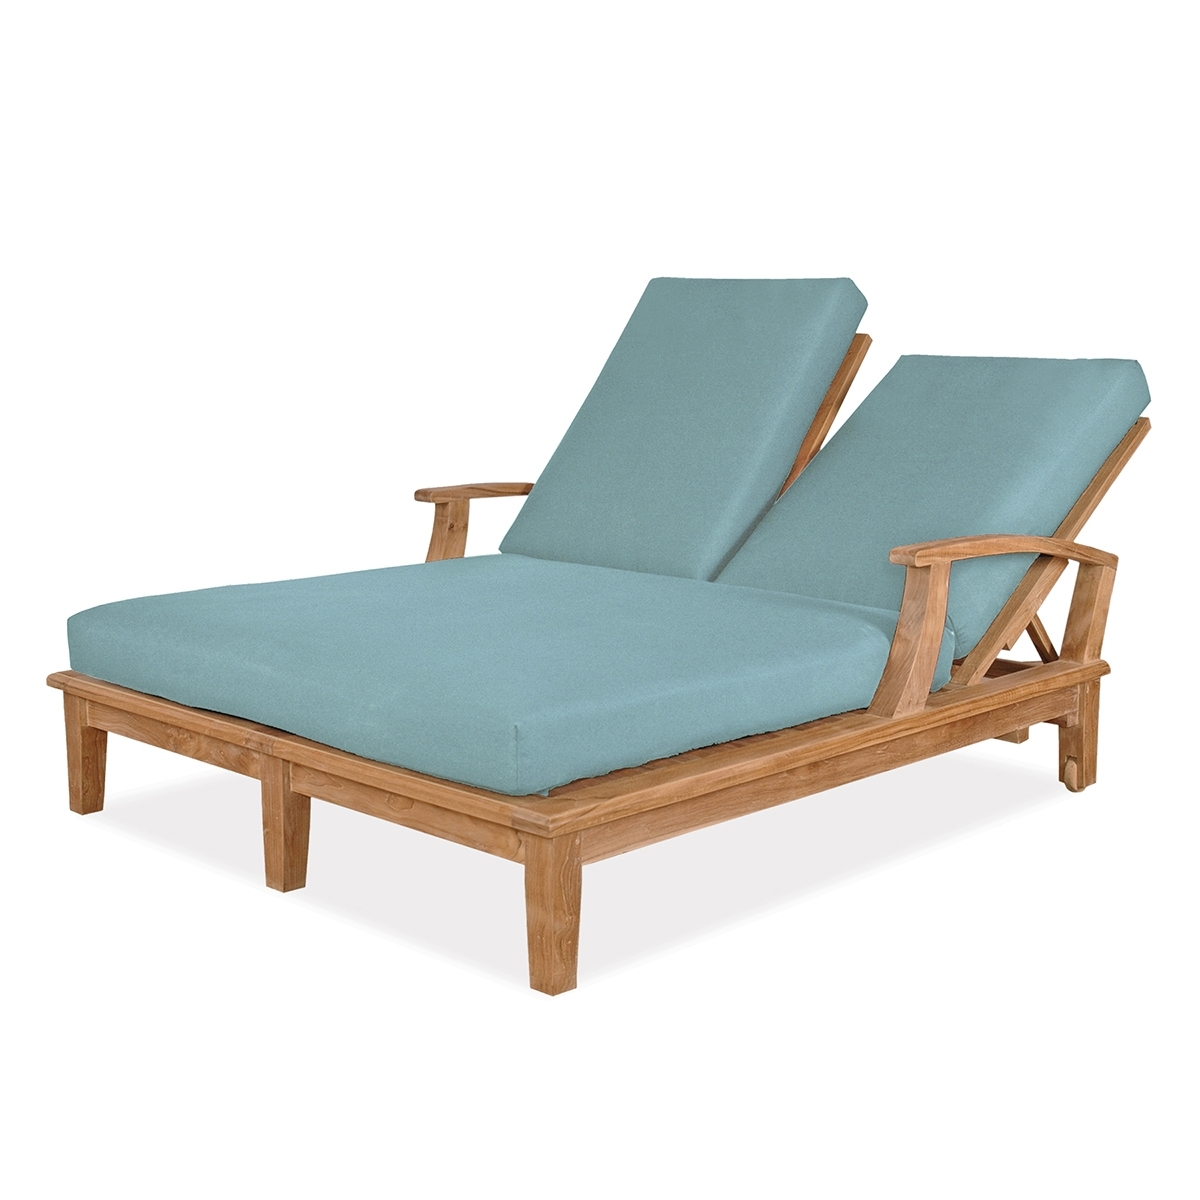 Current Fabric Outdoor Chaise Lounge Chairs With Double Chaise Lounge (View 2 of 15)